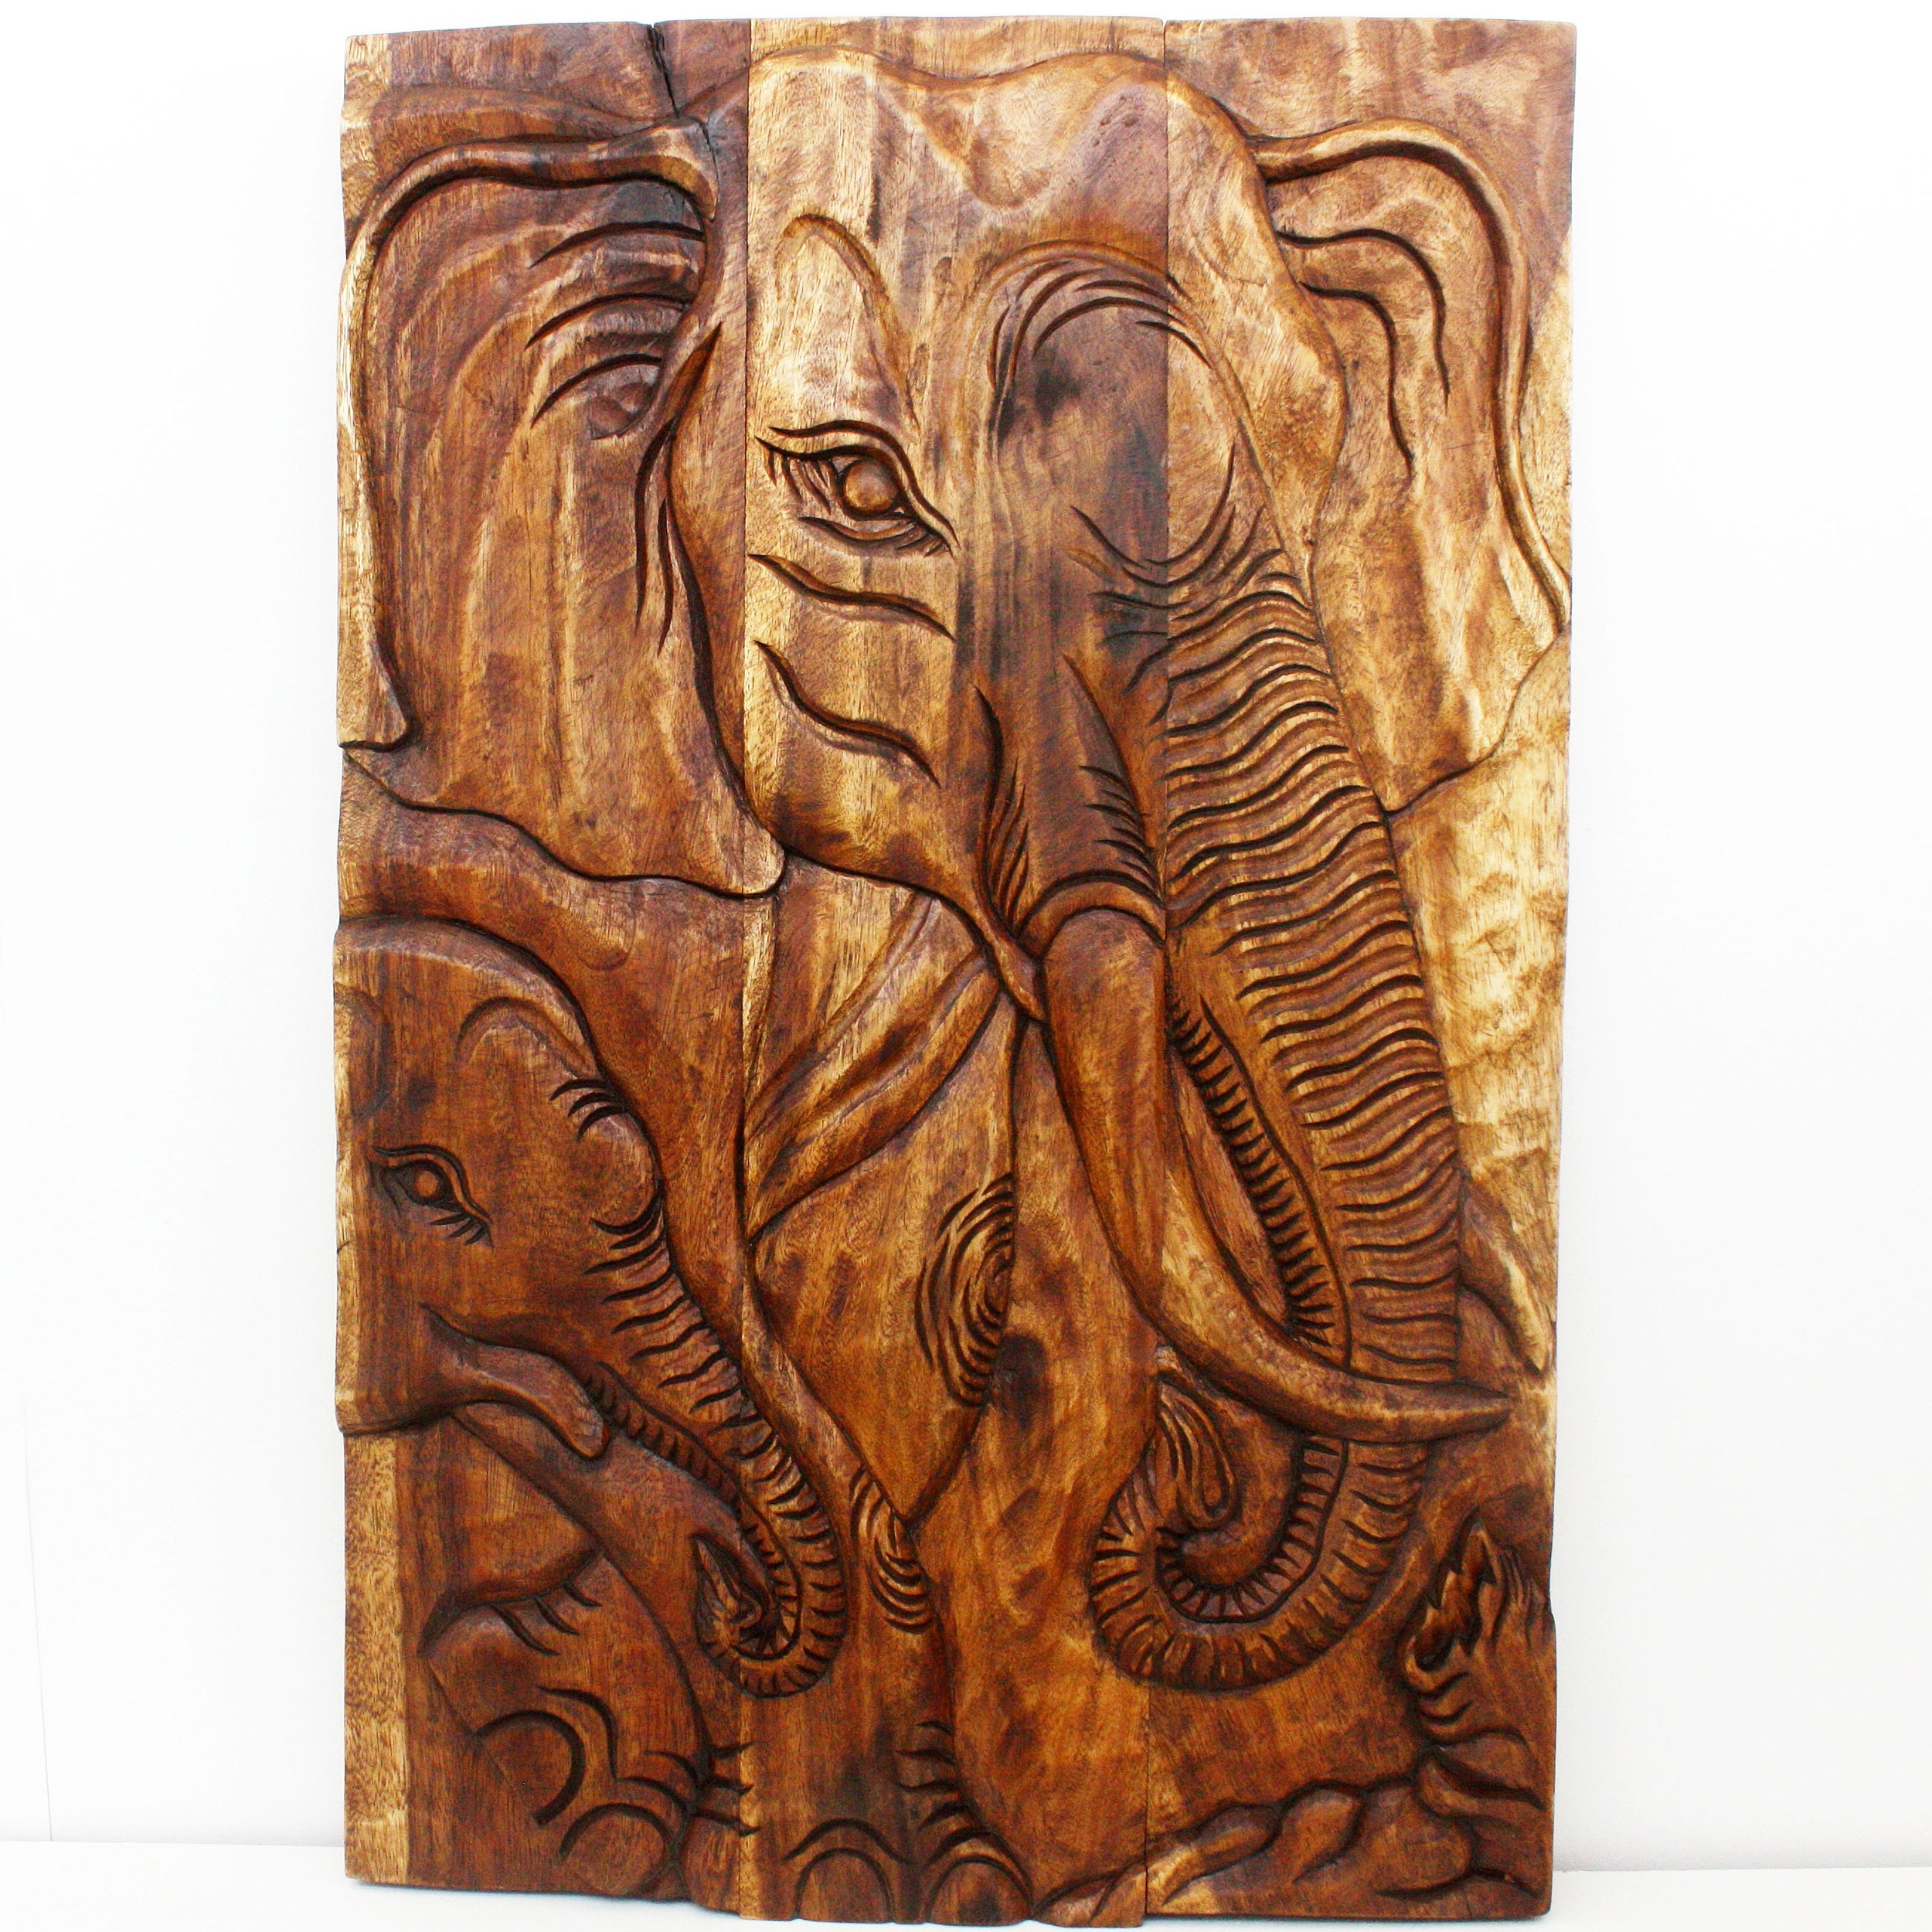 2018 Tree Of Life Wood Carving Wall Art With Regard To Wall Decor Thailand Wood Art Panels Nature Carvings (View 1 of 15)